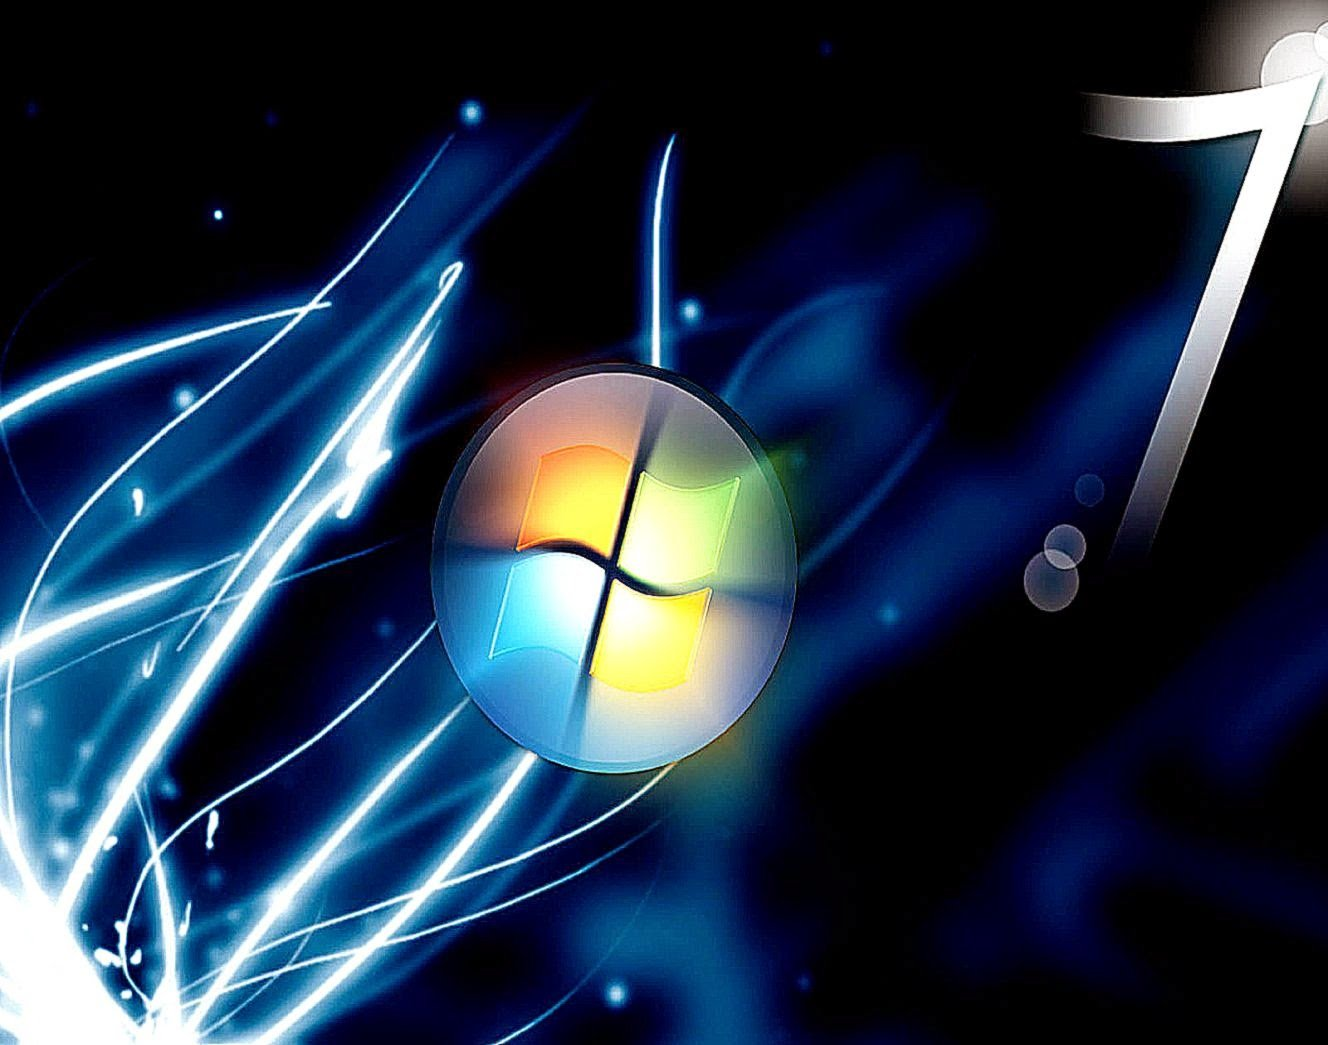 Animated Wallpapers Windows 7 Wallpapers Background 1328x1045